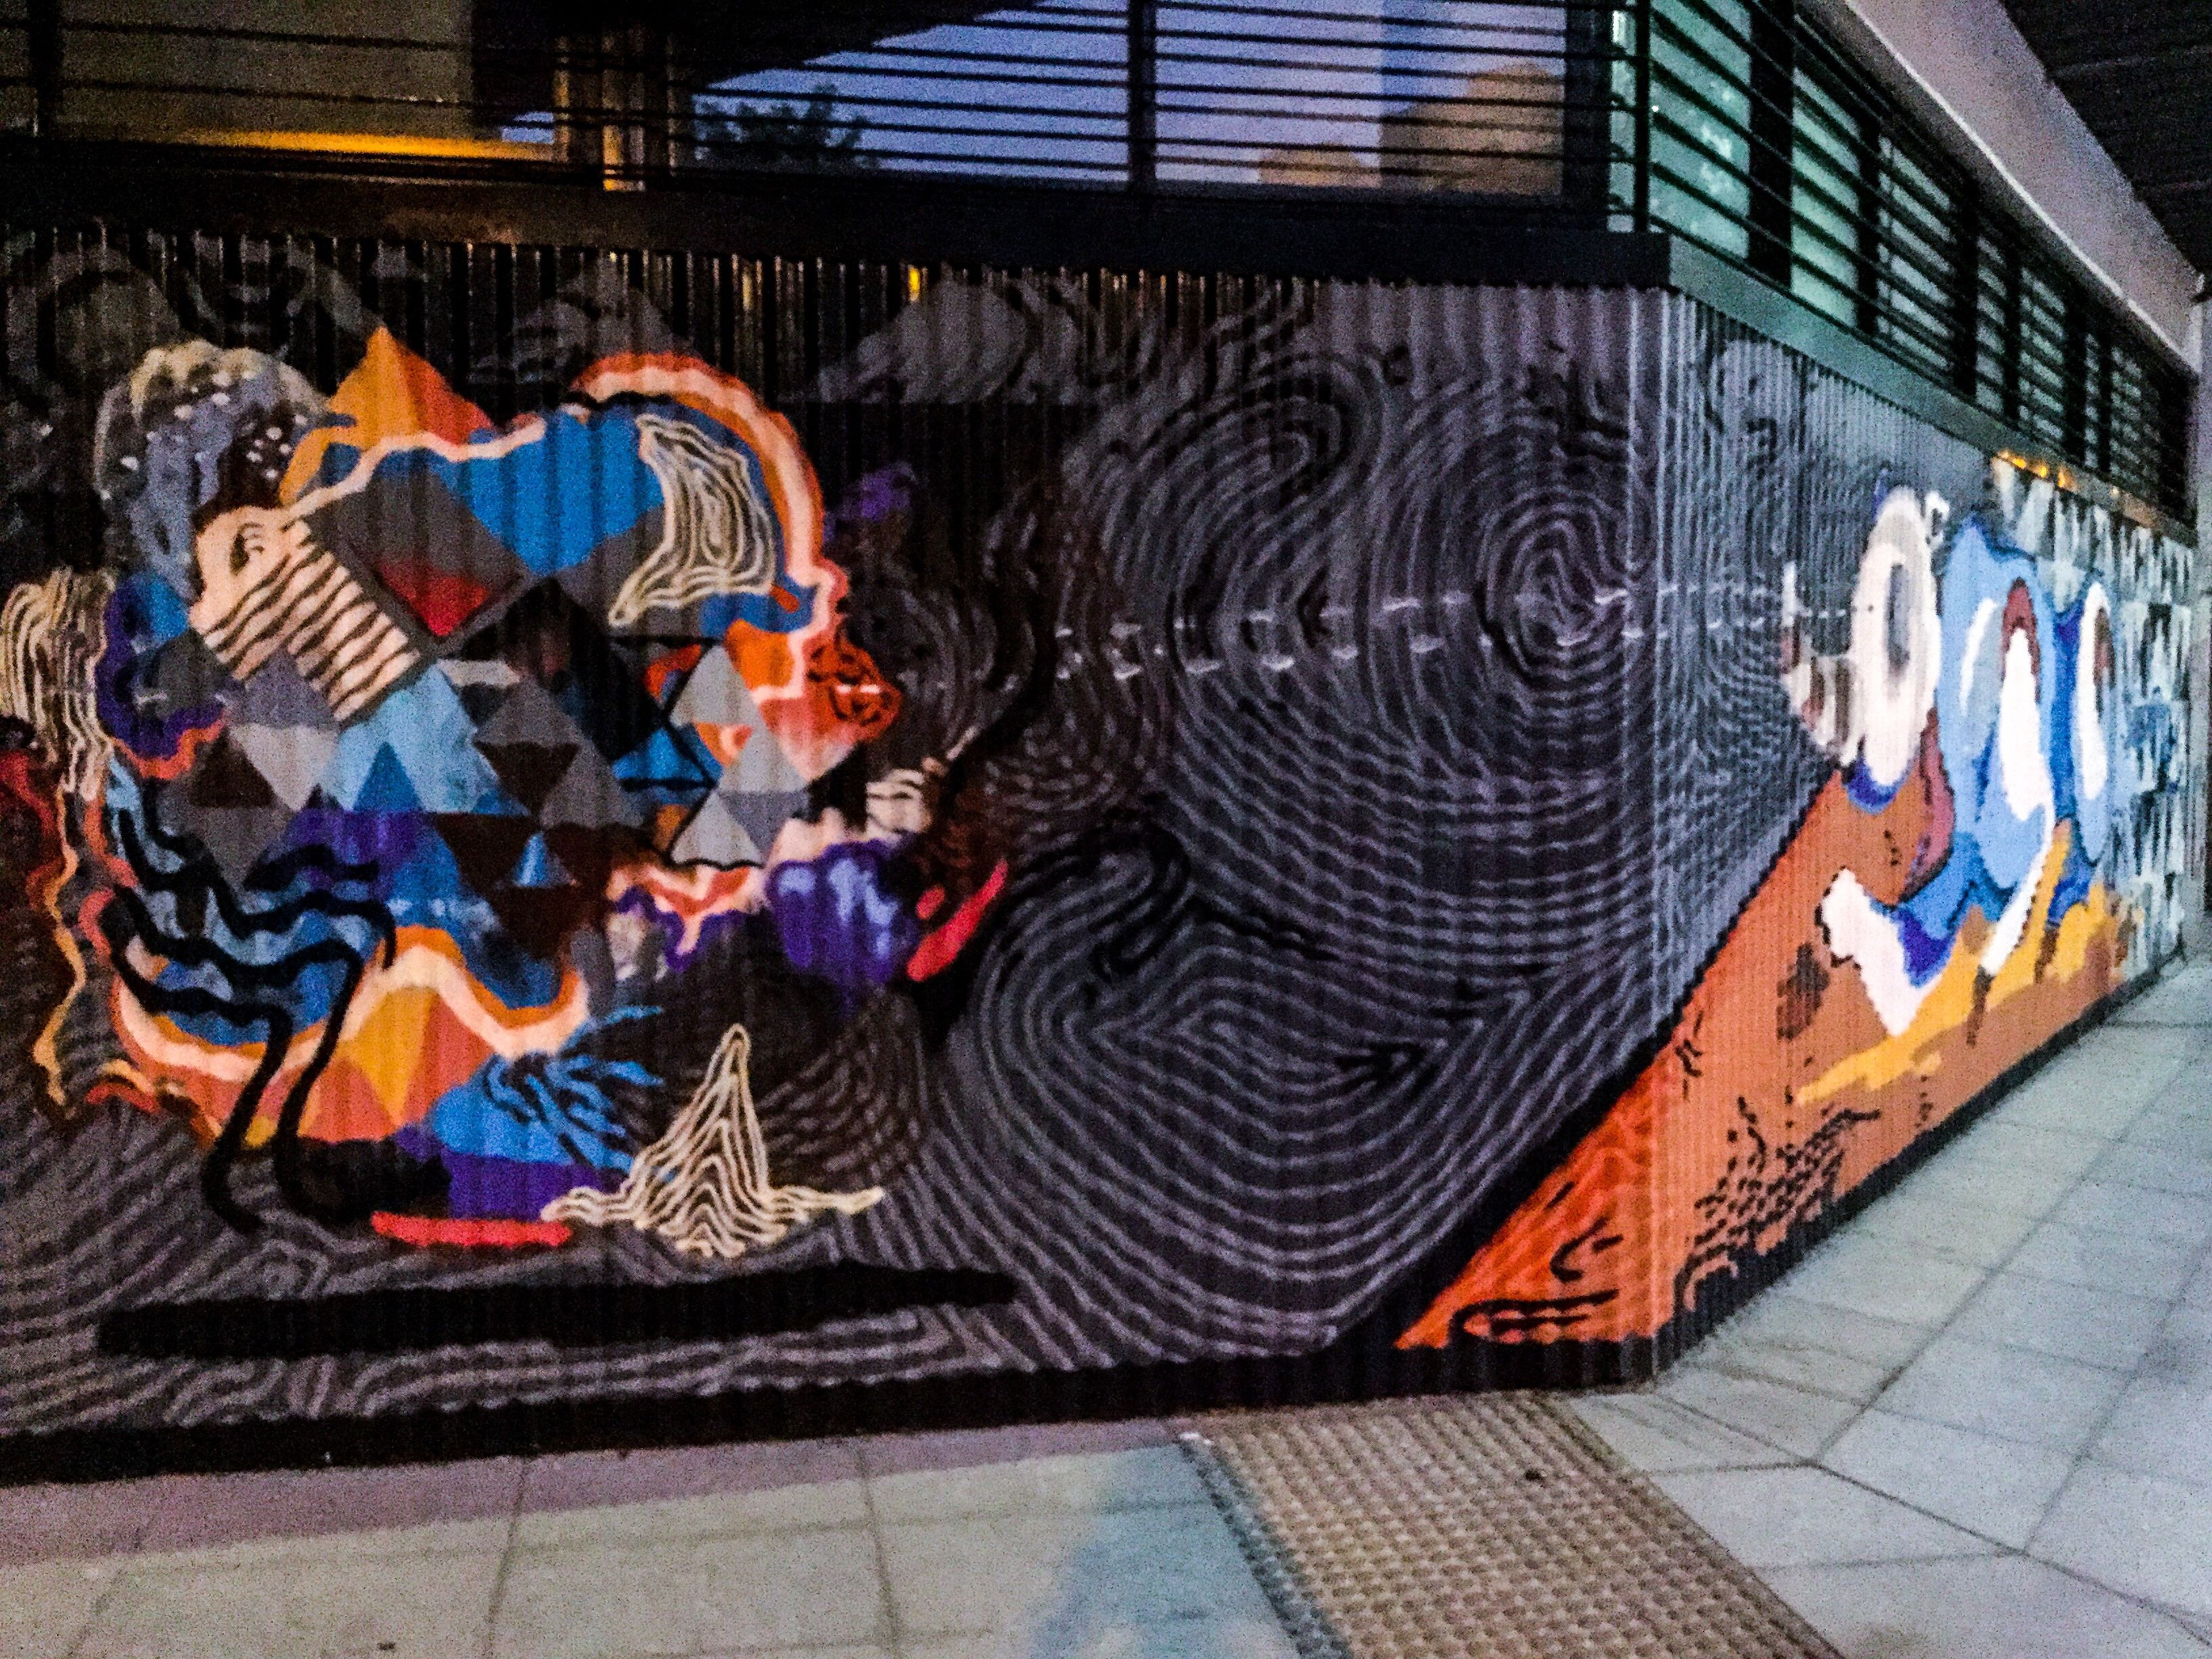 graffiti, art and craft, art, creativity, multi colored, wall - building feature, street art, built structure, human representation, architecture, vandalism, indoors, text, mural, building exterior, day, no people, brick wall, abandoned